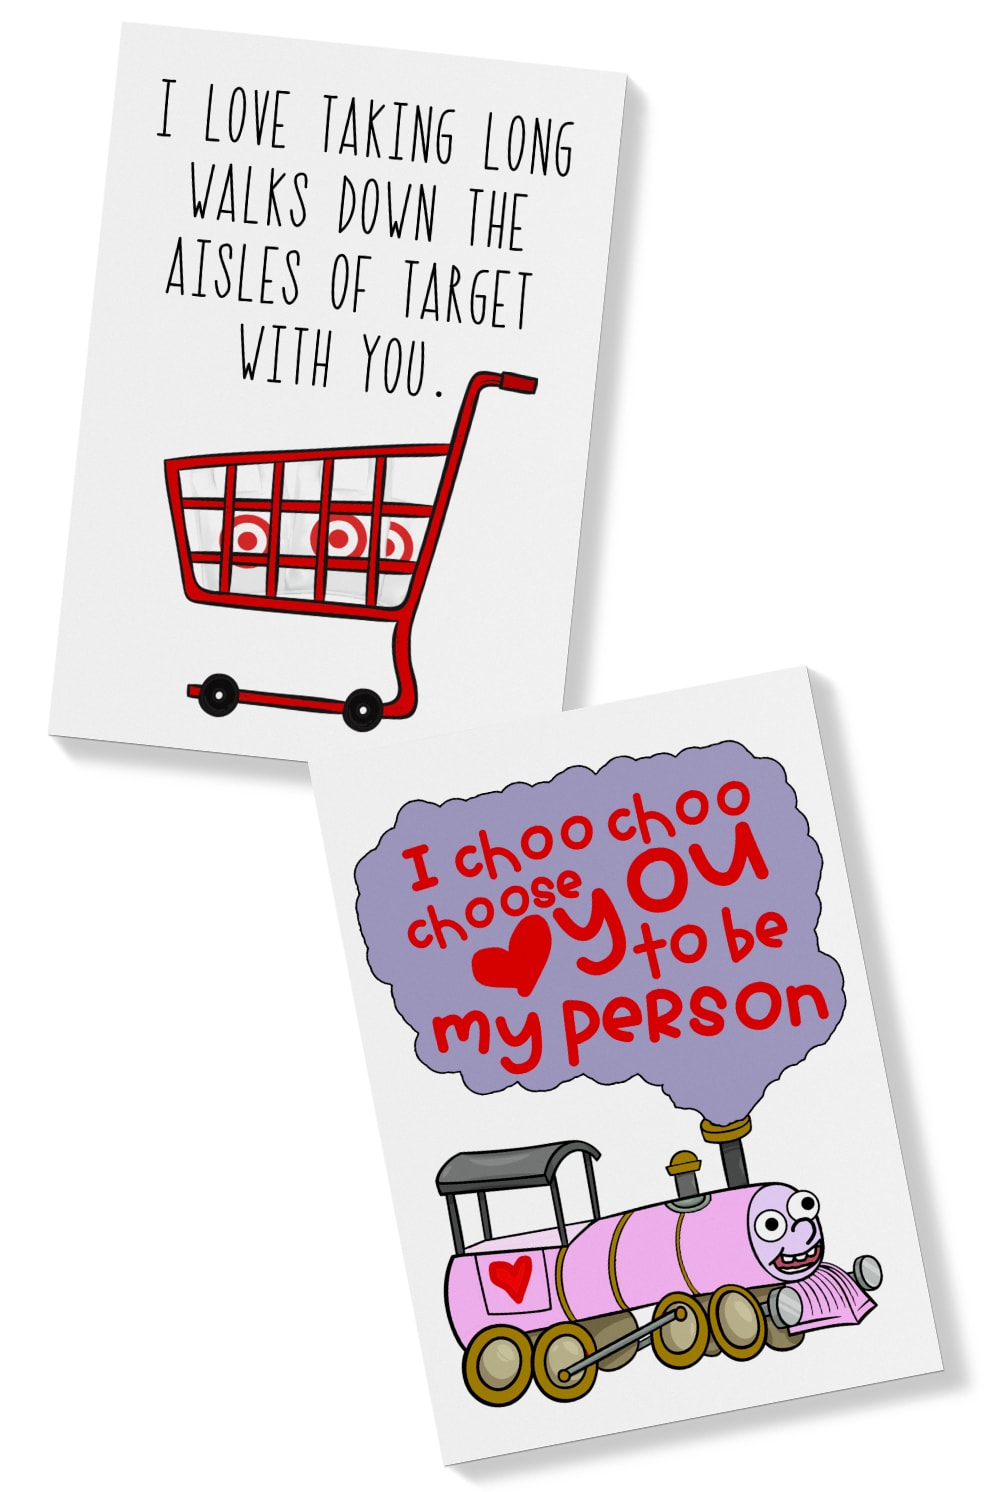 graphic regarding I Choo Choo Choose You Printable Card identify Humorous Playing cards for Friendship - Free of charge Amusing Playing cards for Close friends